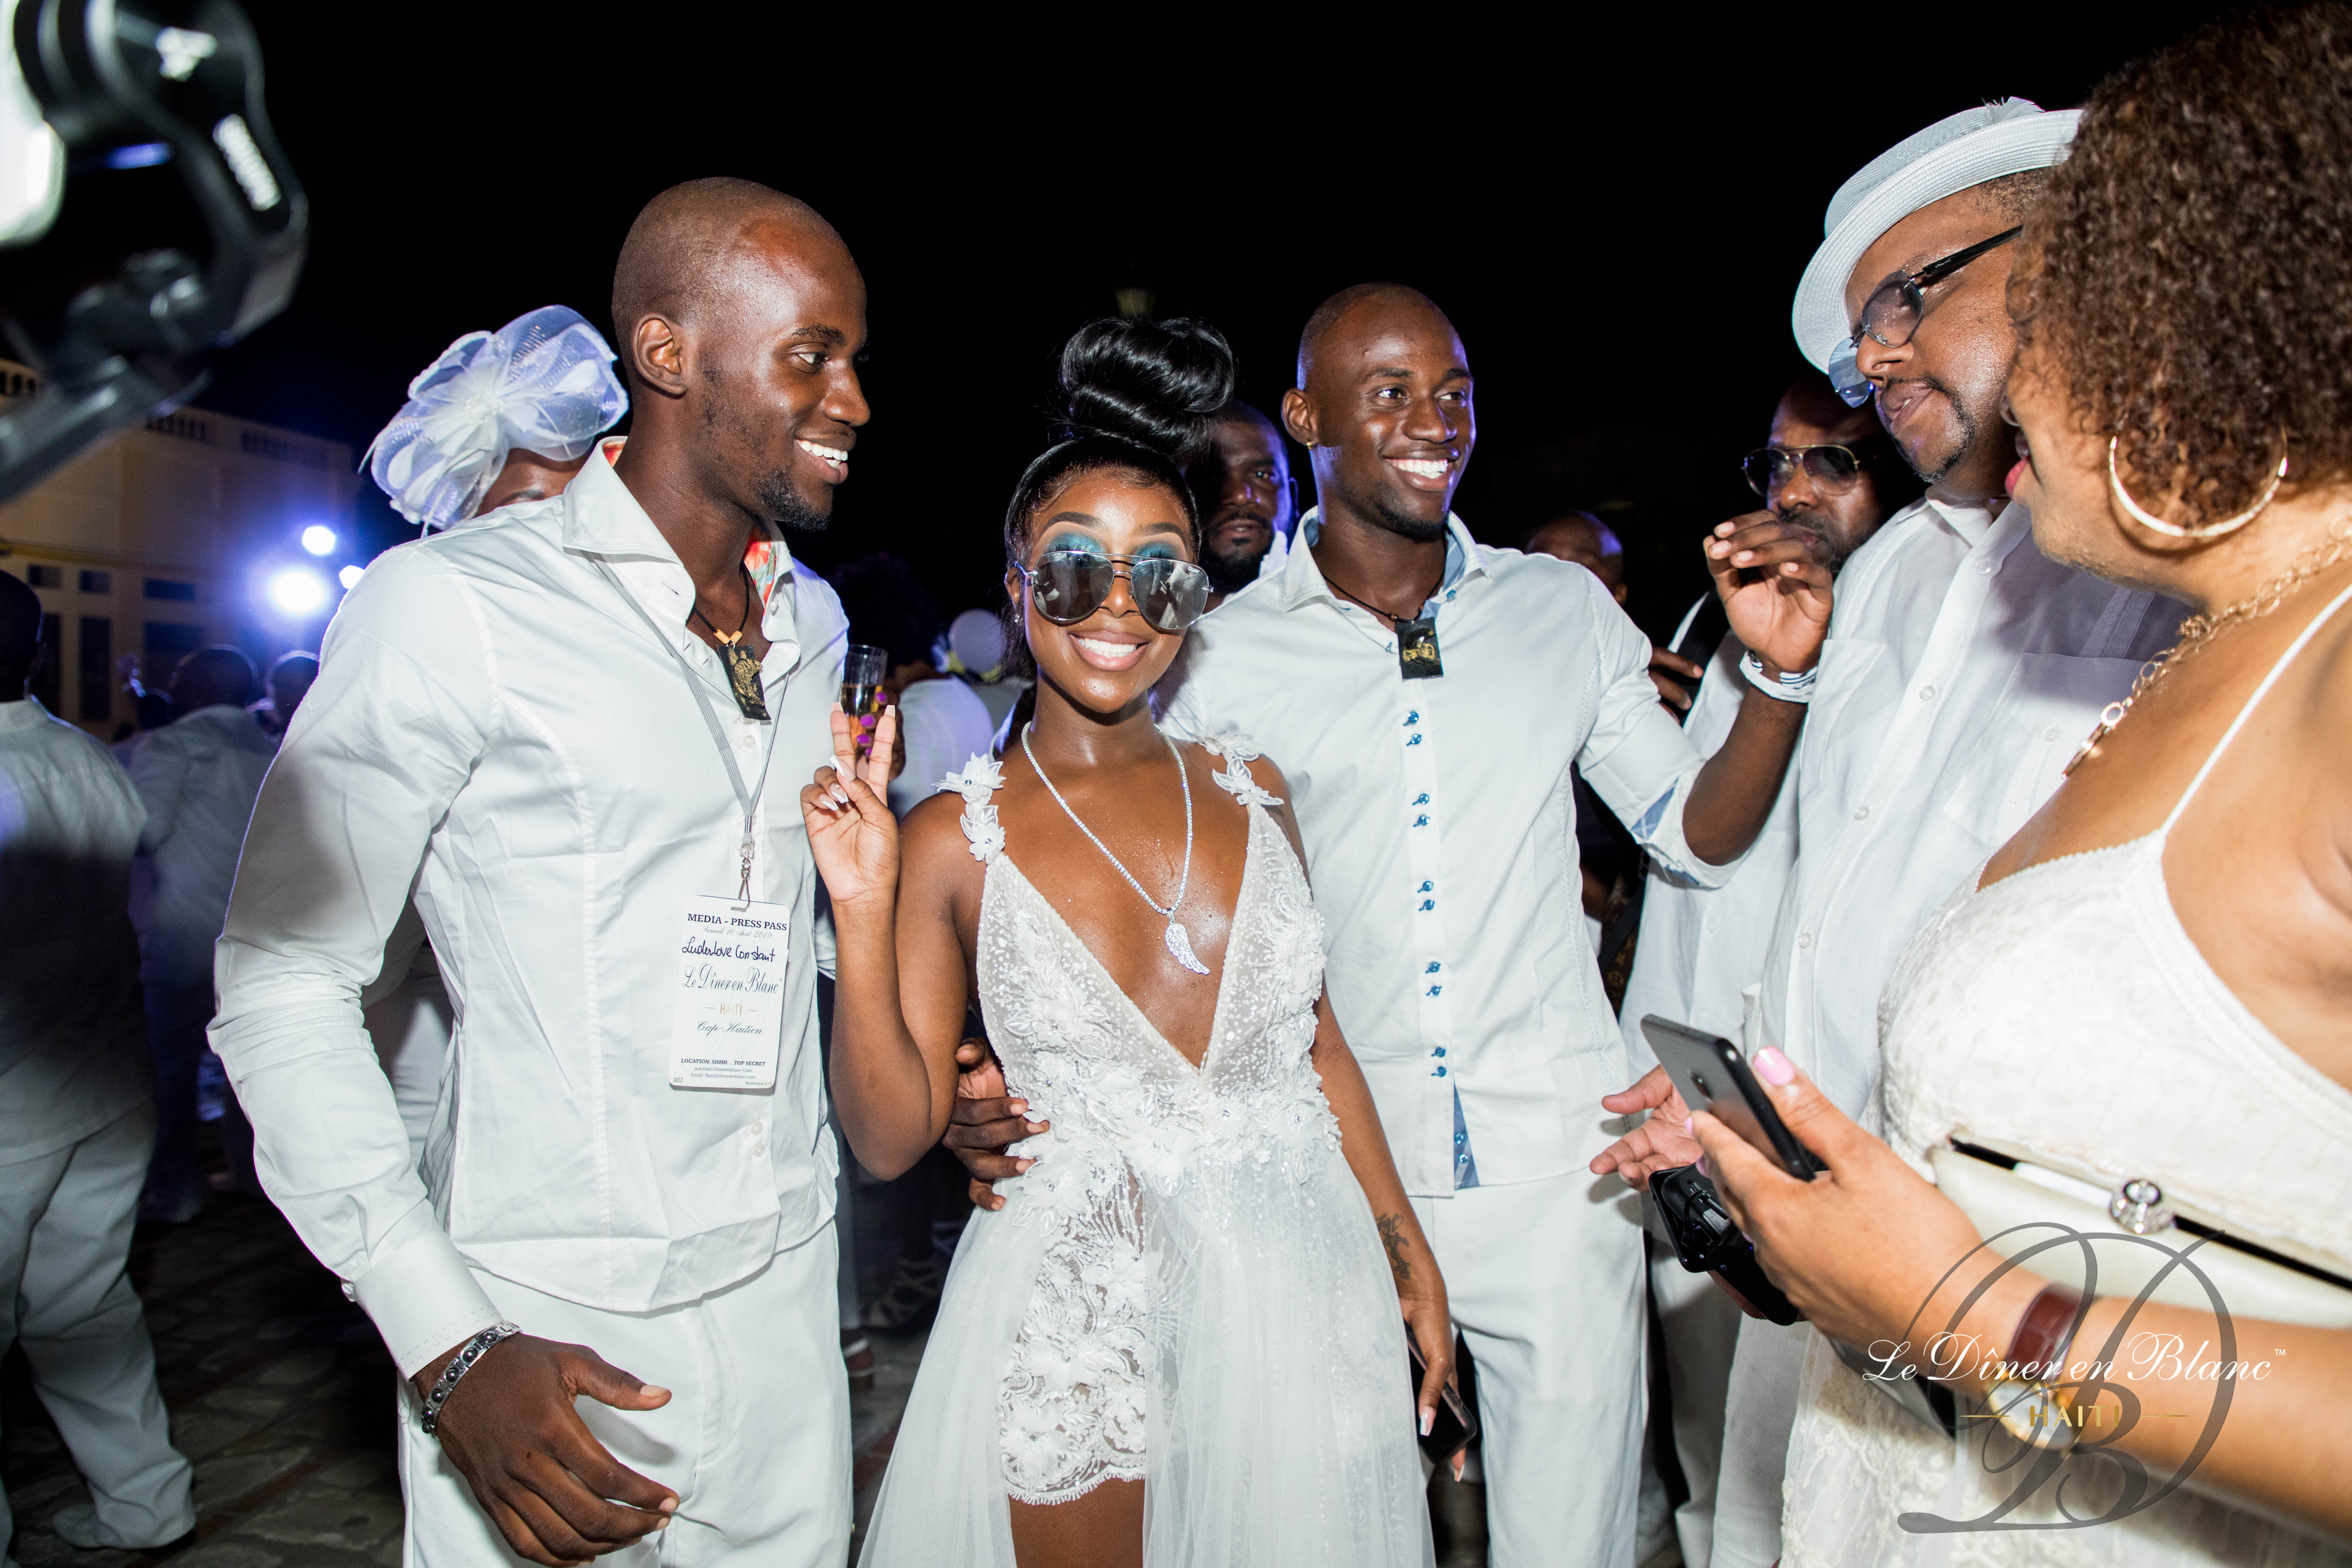 These Photos From Haiti's Dîner en Blanc Have Us Ready To Party Like Haitians